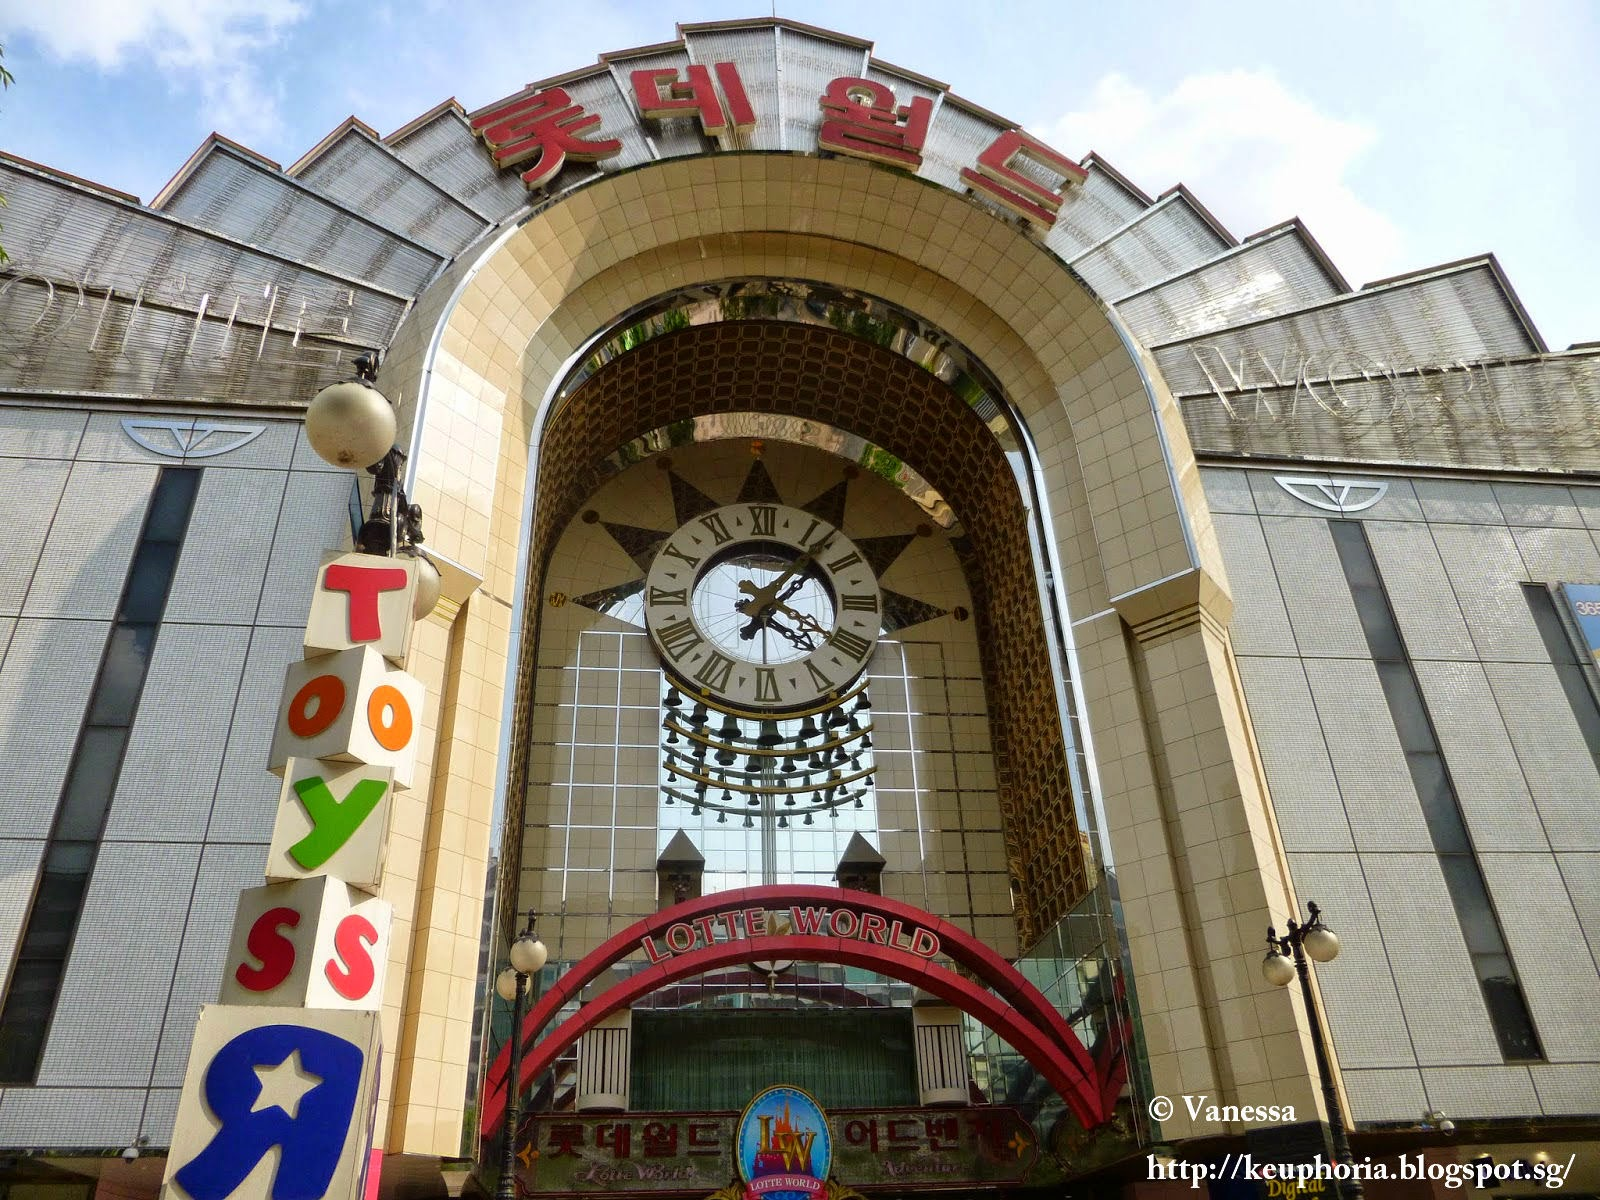 Lotte World and Lotte Star Avenue